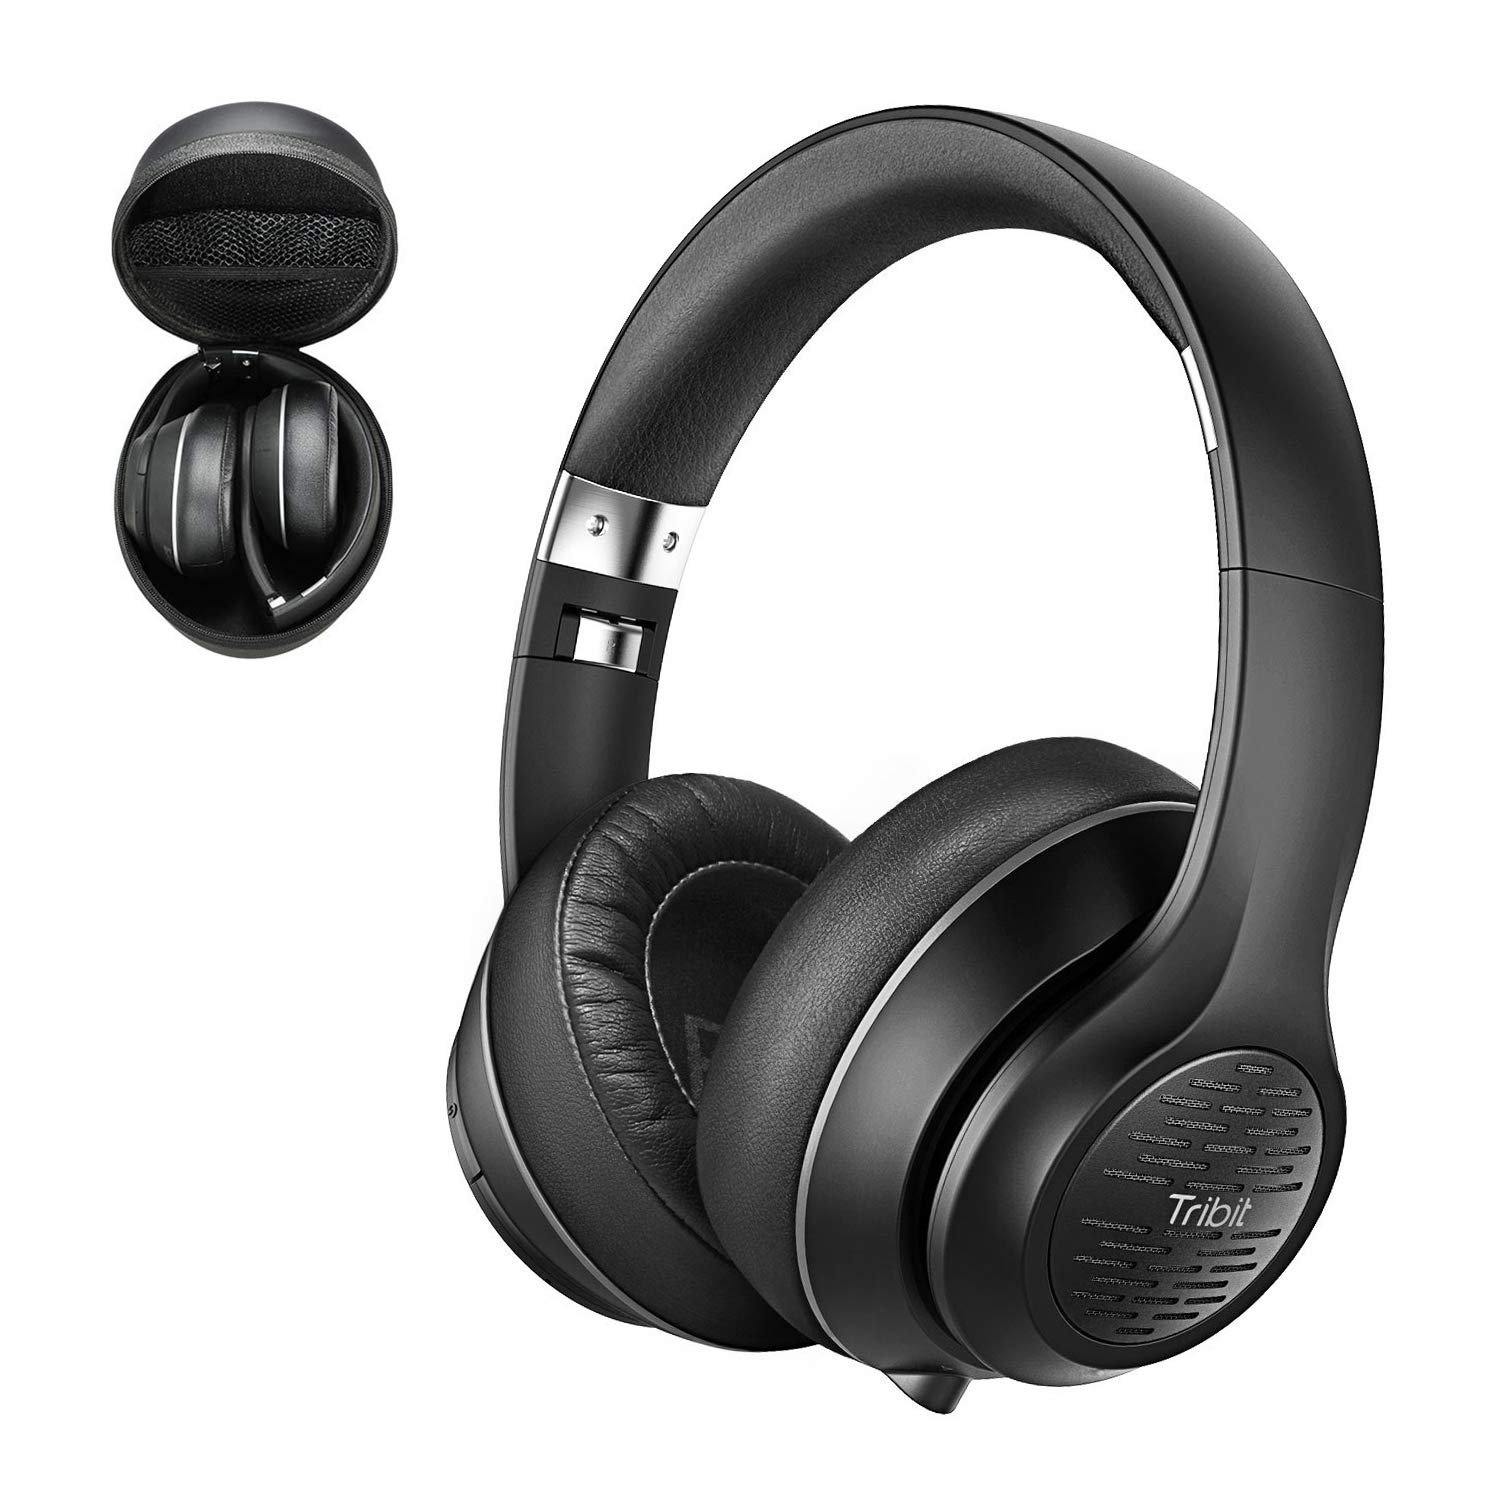 Tribit XFree Tune Bluetooth Headphones Over Ear - Wireless Headphones 40 Hrs Playtime, Hi-Fi Stereo Sound with Rich Bass, Built-in Mic, Soft Earmuffs - Foldable Headset with Carry Case, Black by Tribit